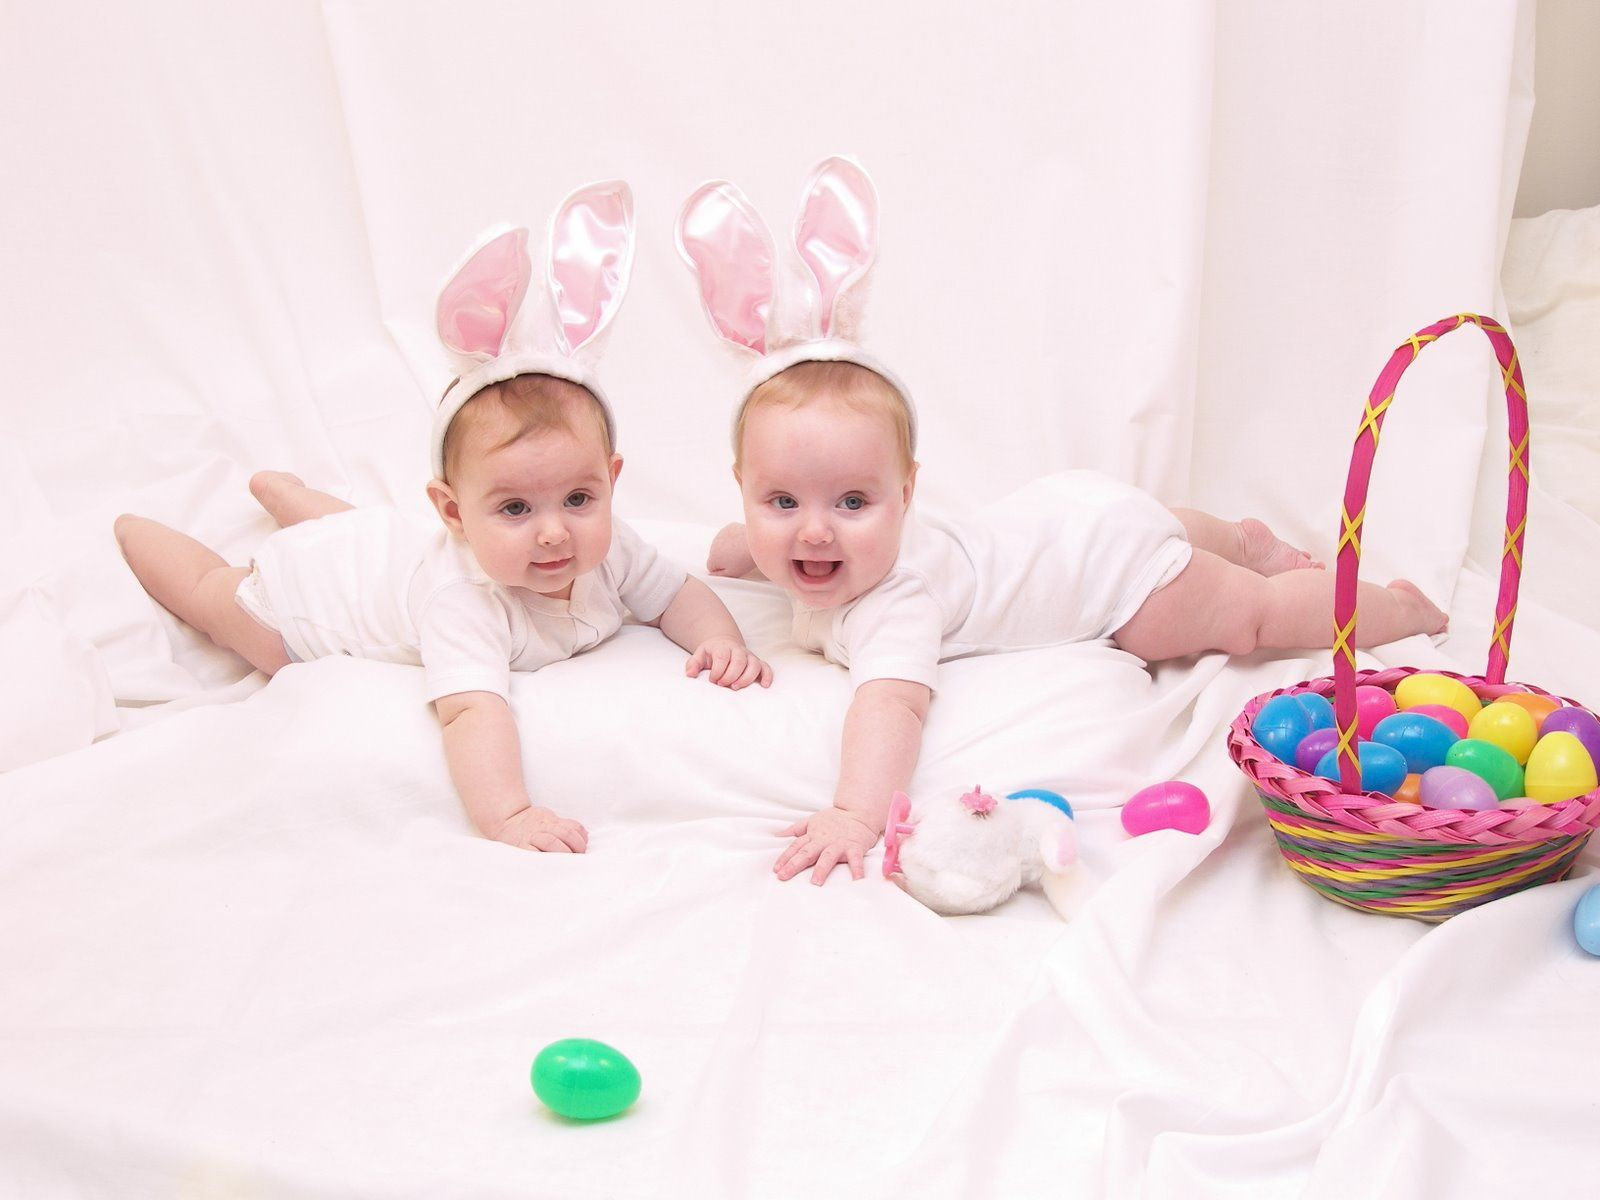 Easter pics think the twins would look so cute in this pose easter pics think the twins would look so cute in this pose negle Gallery